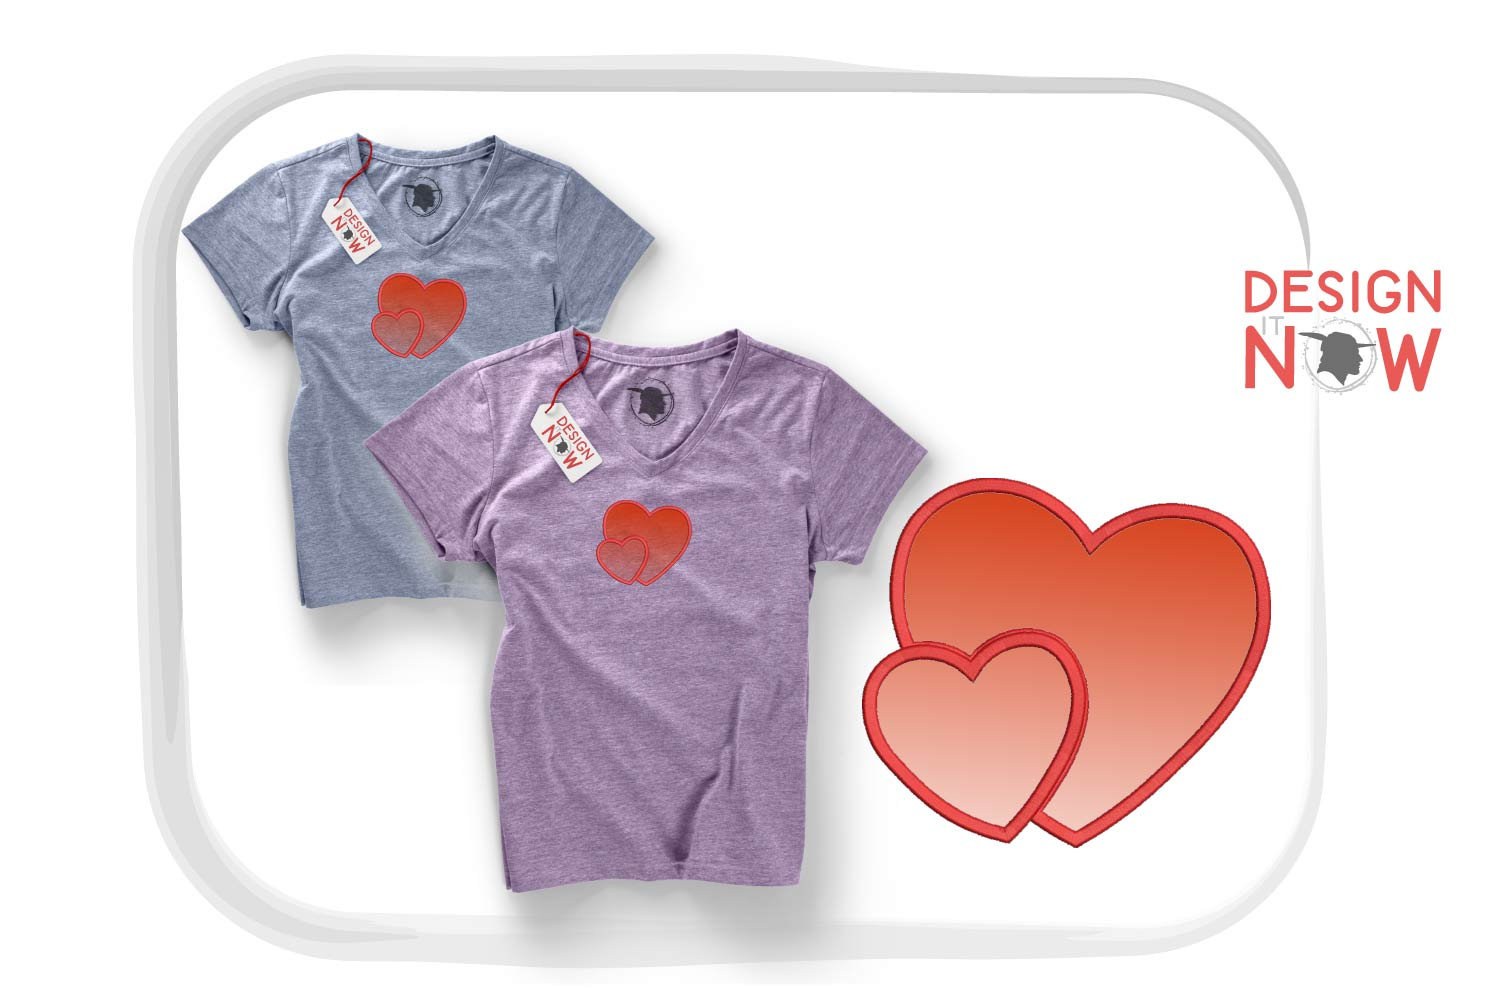 Heart Applique Embroidery Design, Heart Embroidery Pattern example image 1